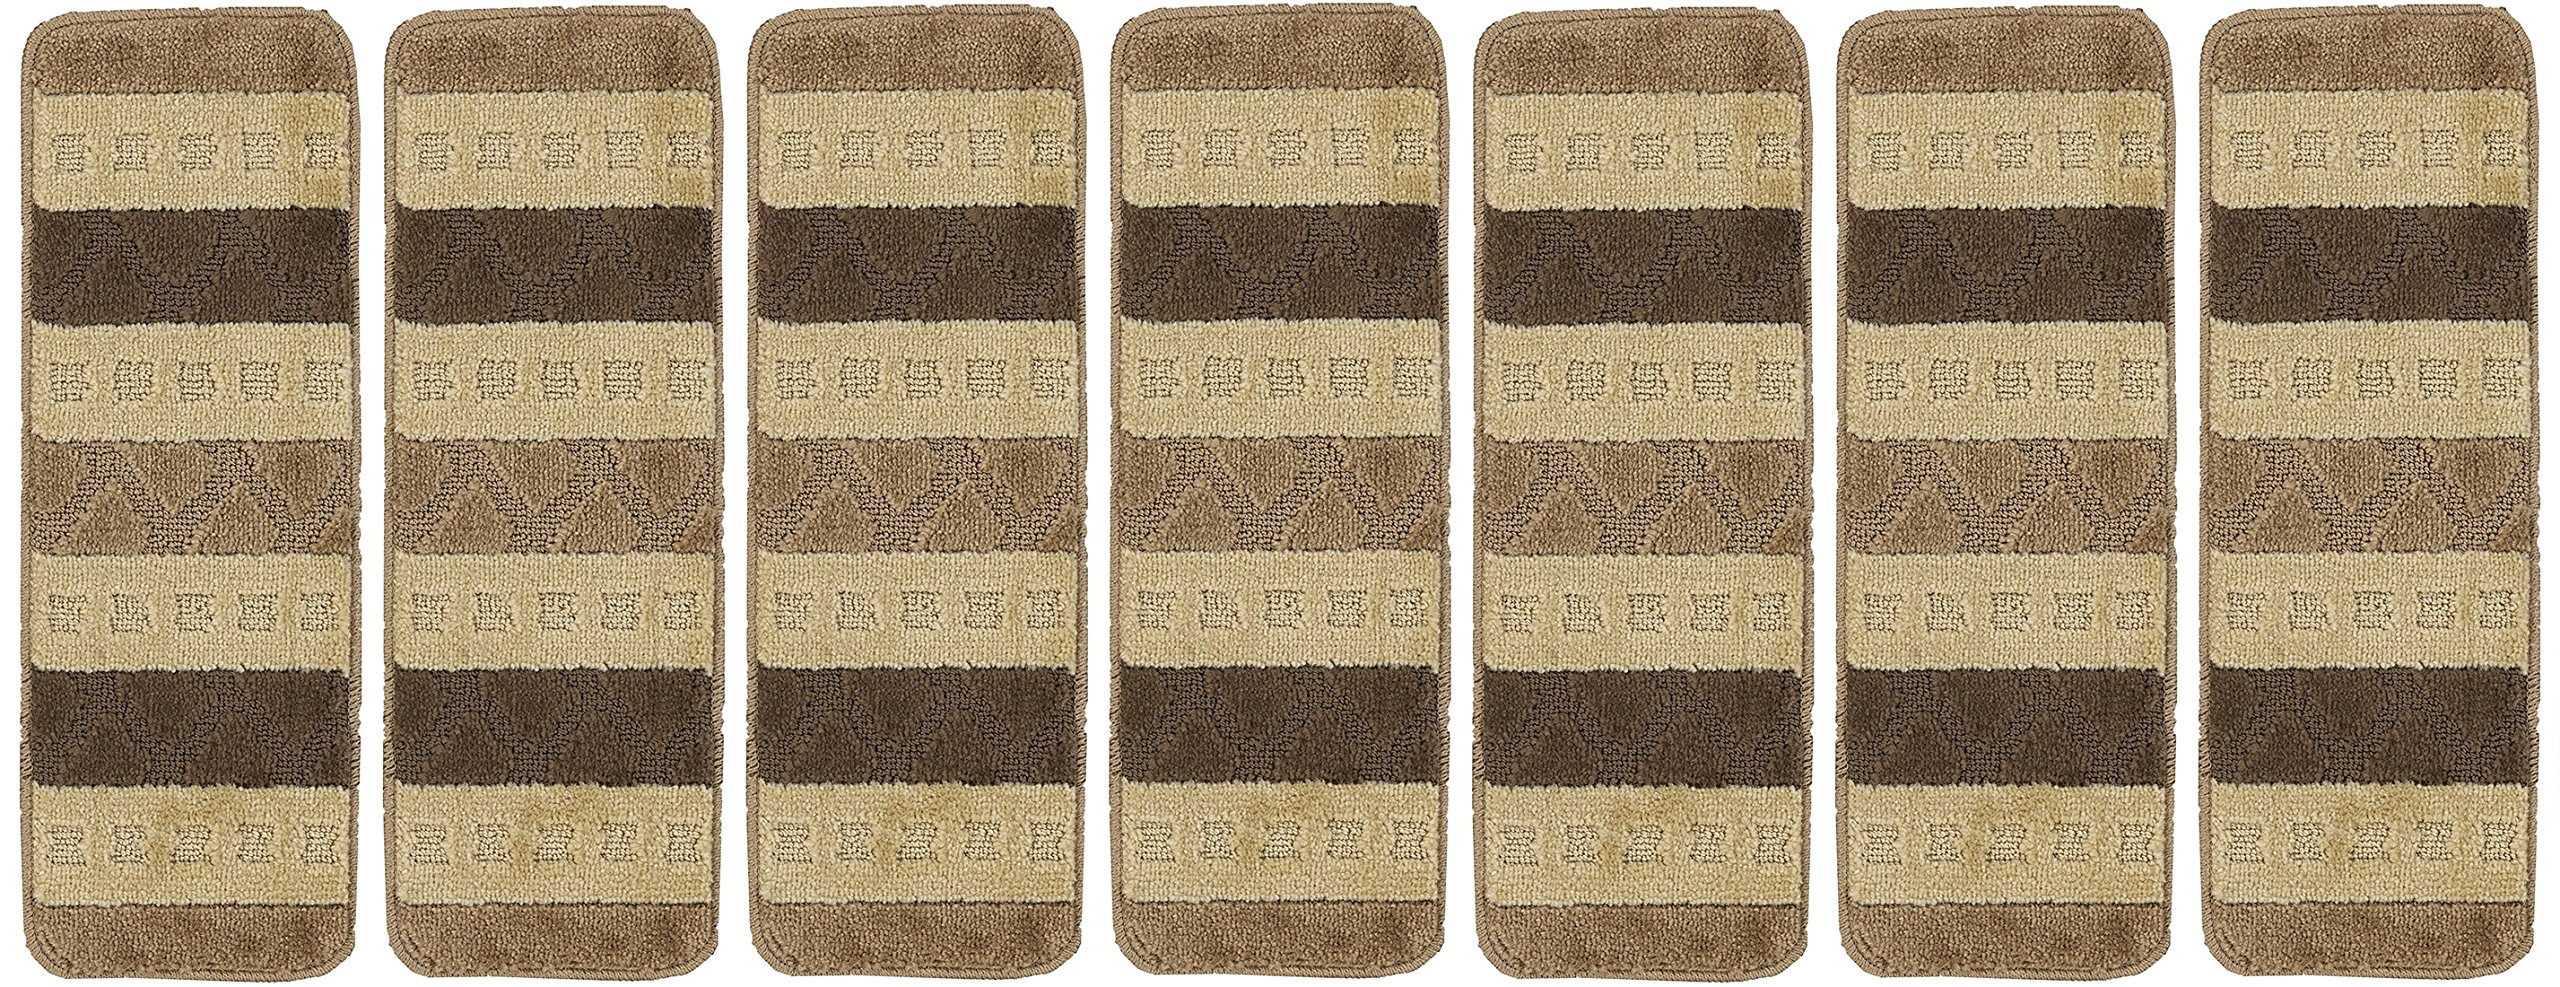 Ottomanson Softy Stair Treads Brown Striped Design Skid Resistant Rubber Backing Non Slip Carpet (9''x26'') Stair Tread Mats 7 Piece Set